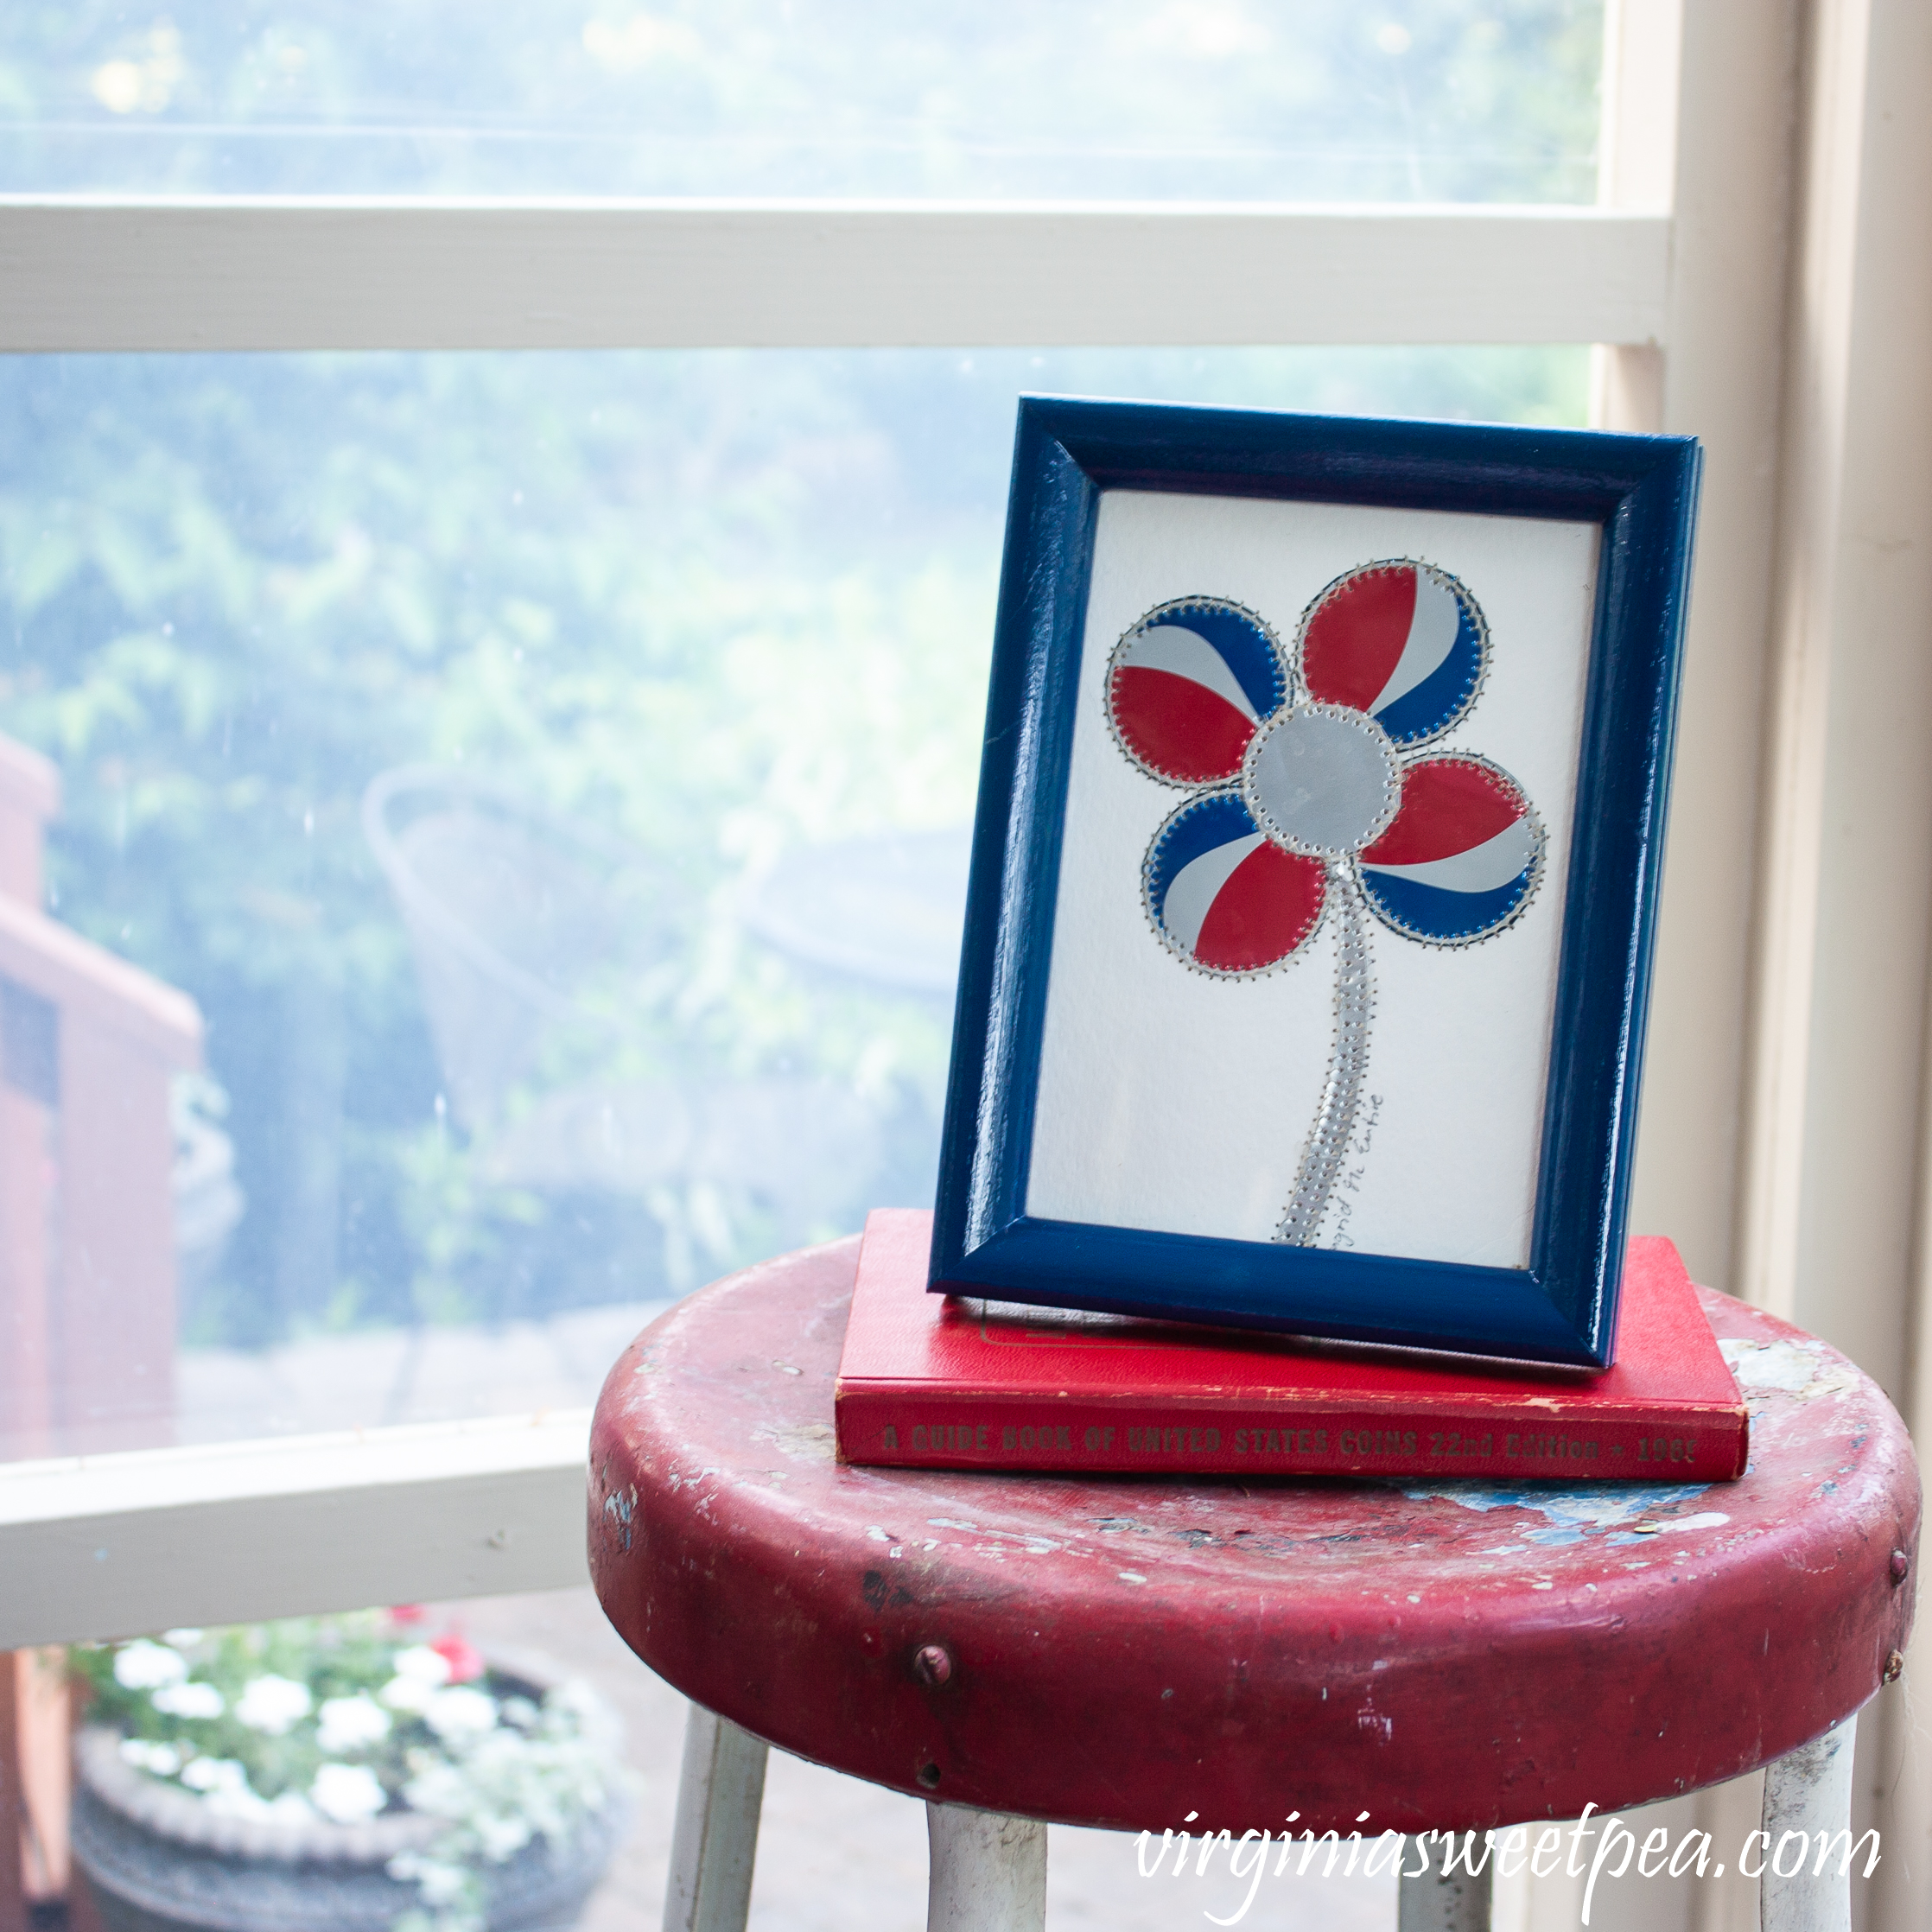 Patriotic card with a flower made from cut up Pepsi can pieces